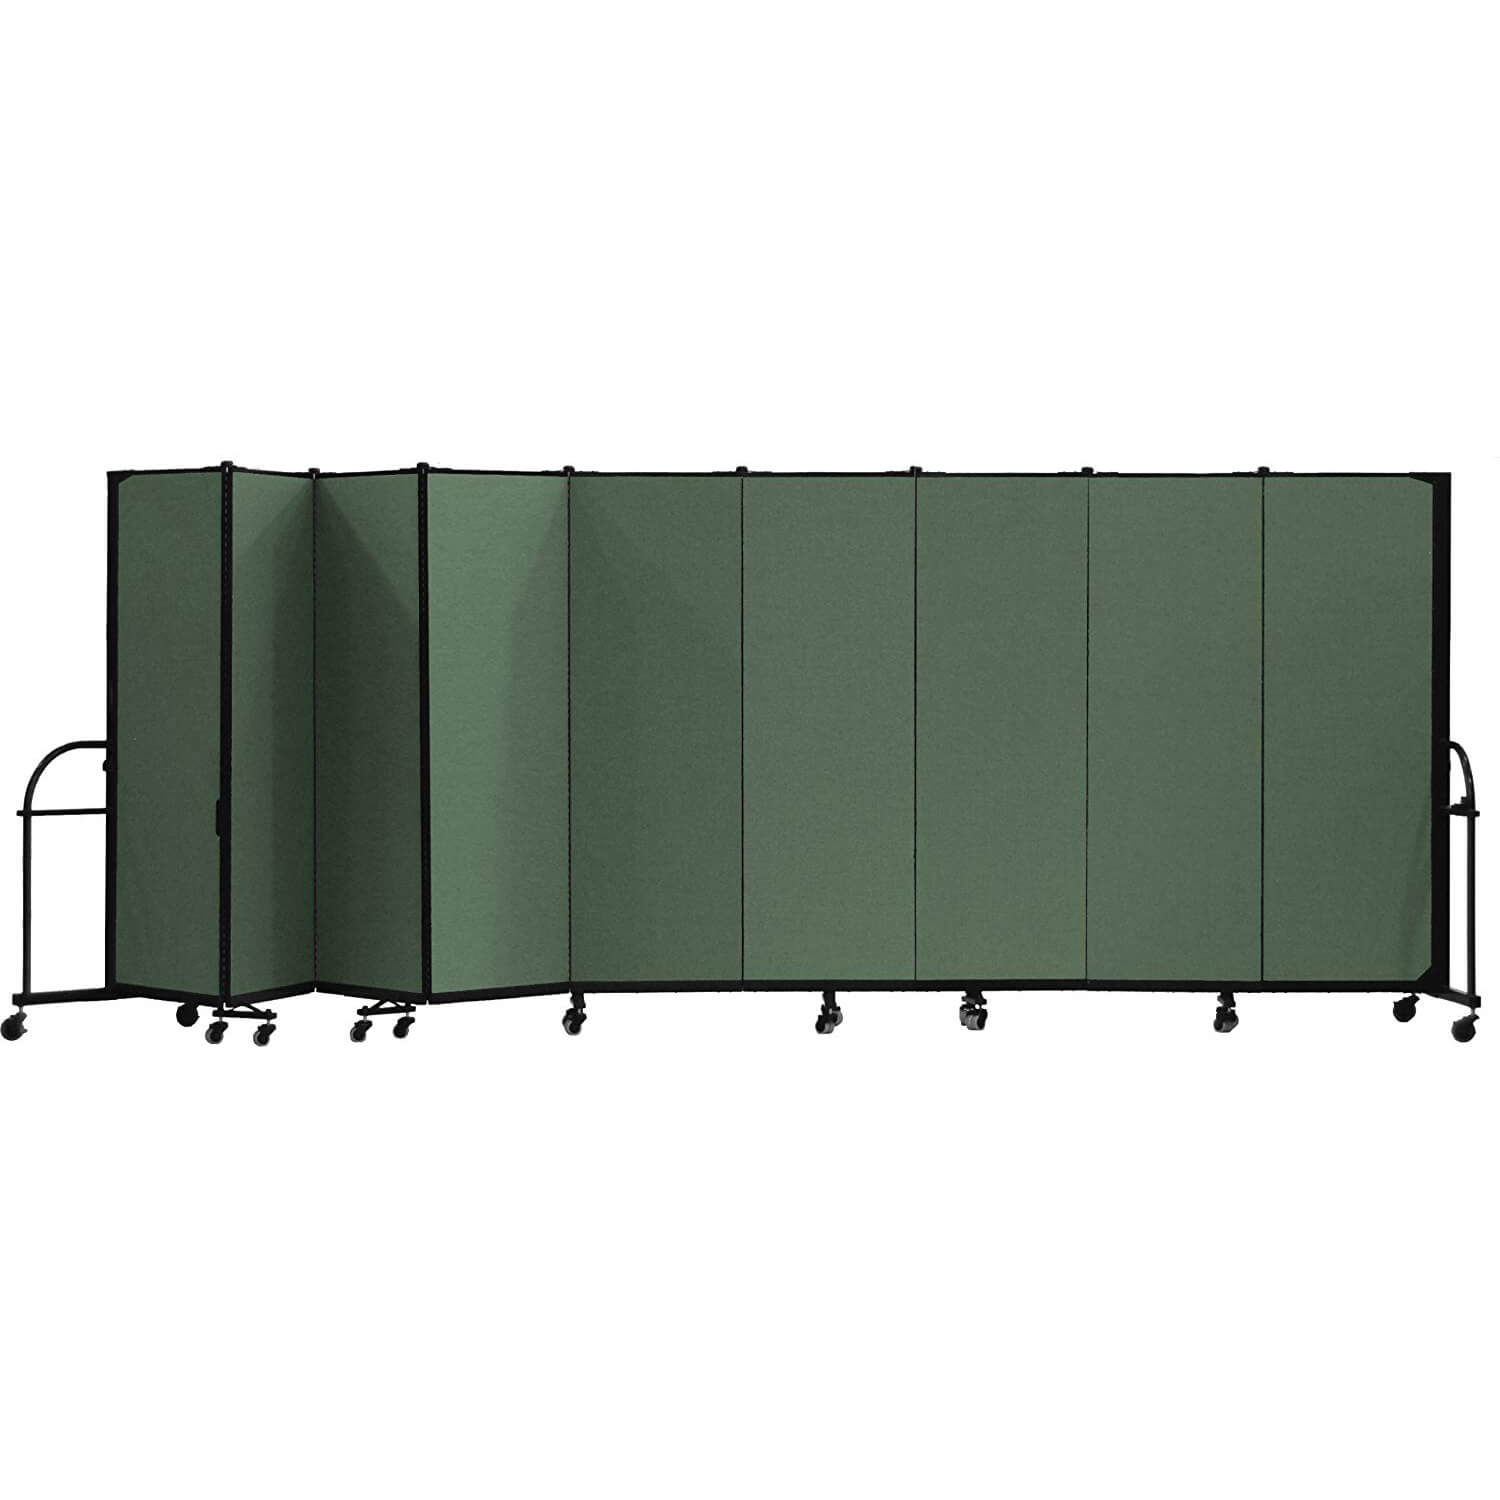 Panel room dividers CUB QSCFSL609DN RCS